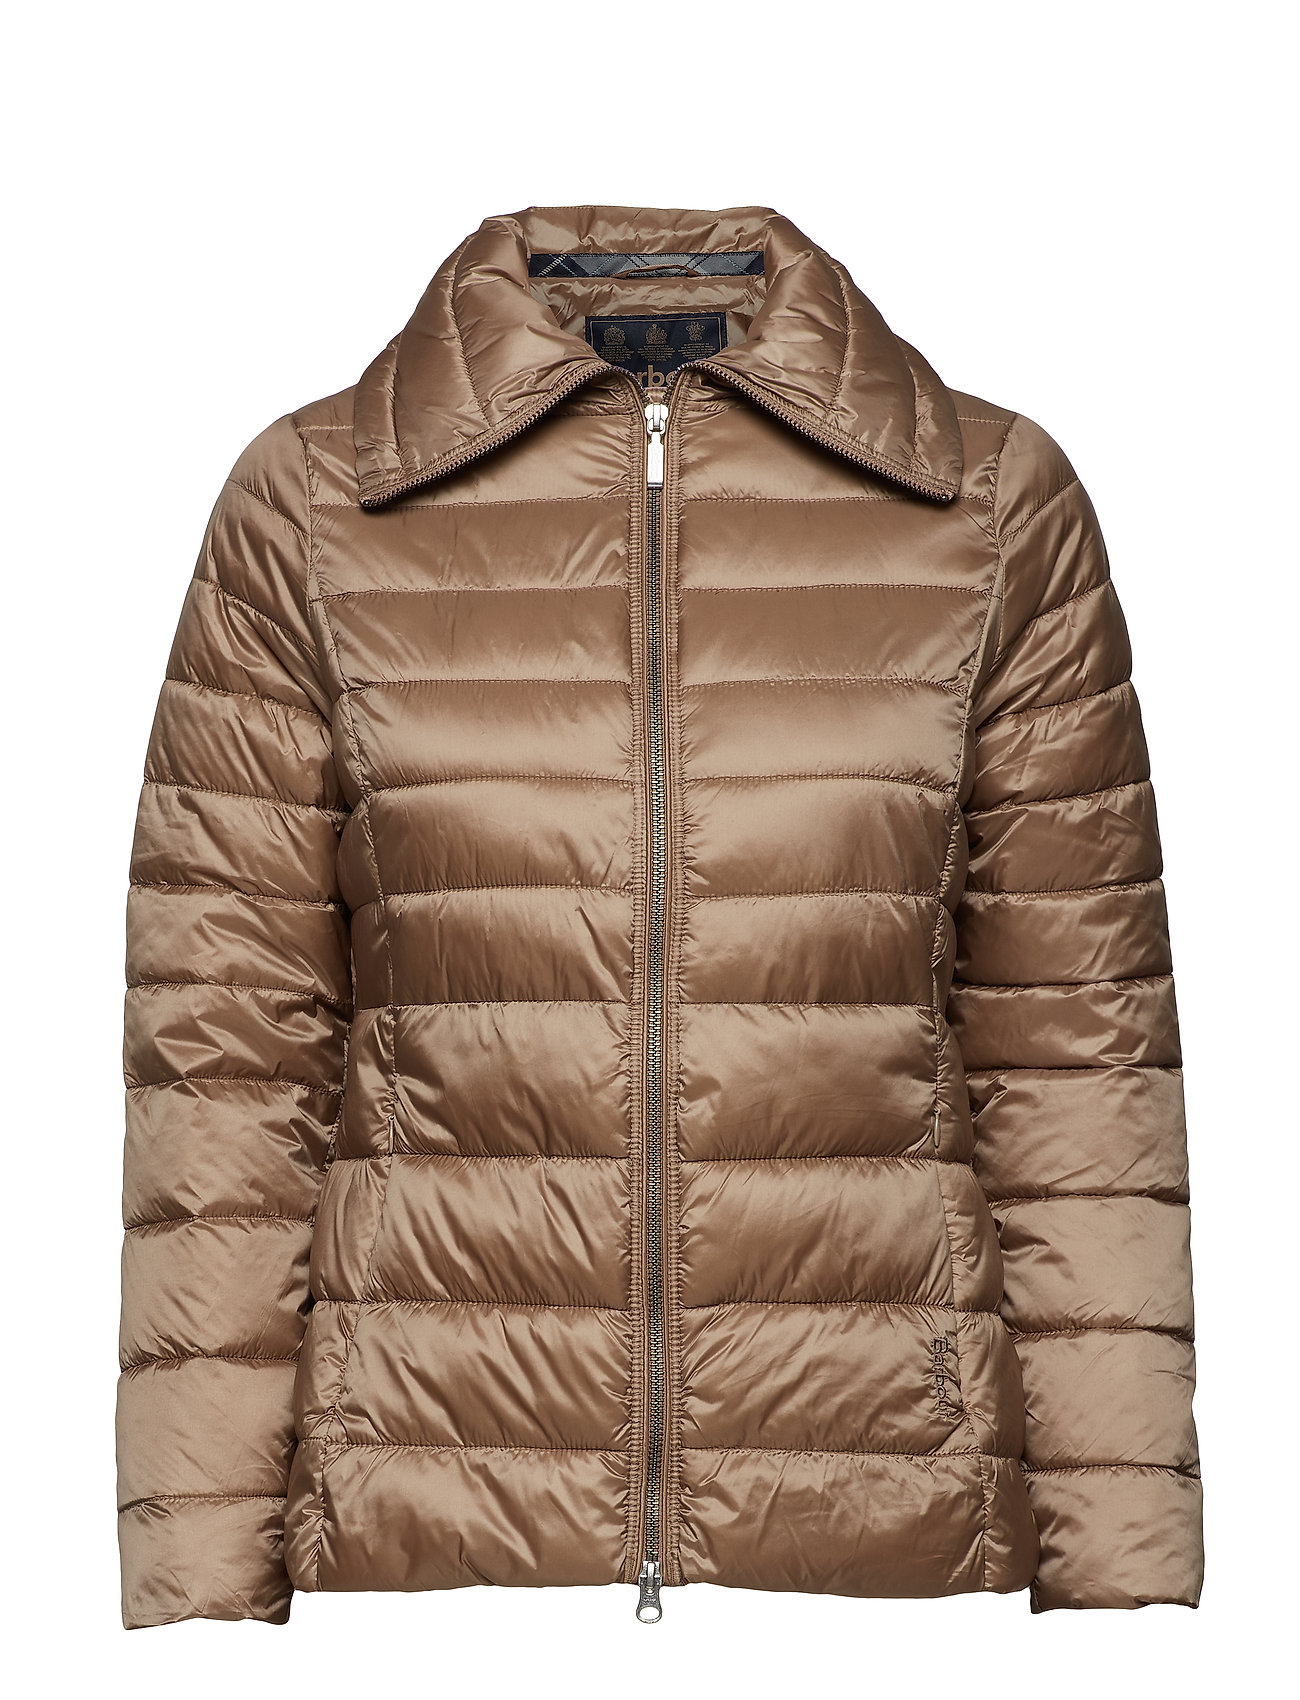 Barbour Barbour Drovers Quilt - SOFT GOLD